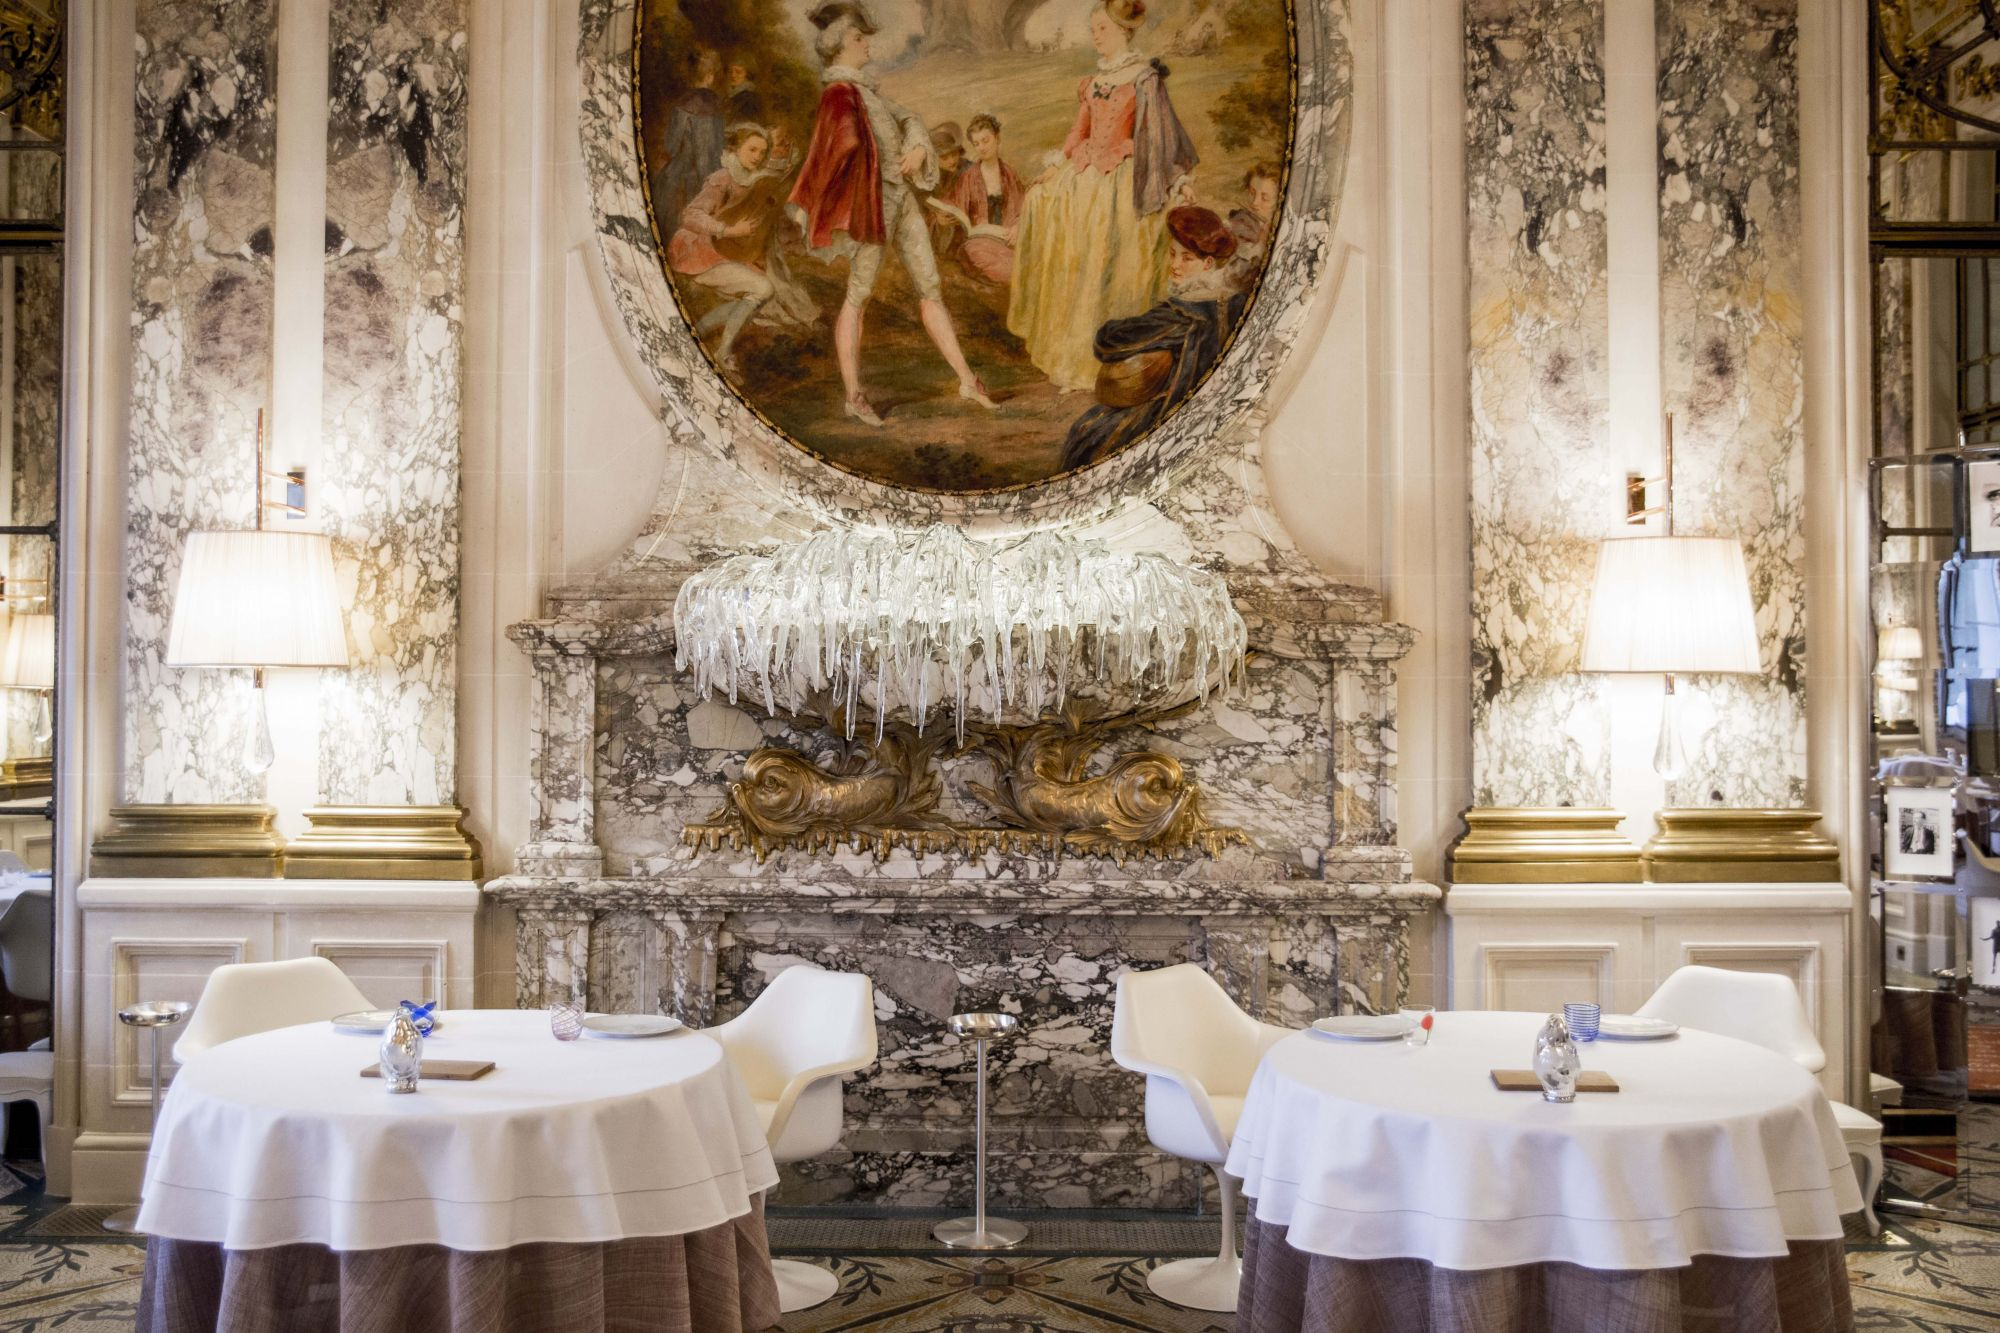 Alain Ducasse will bring five of his star chefs to Paris for a very special dinner